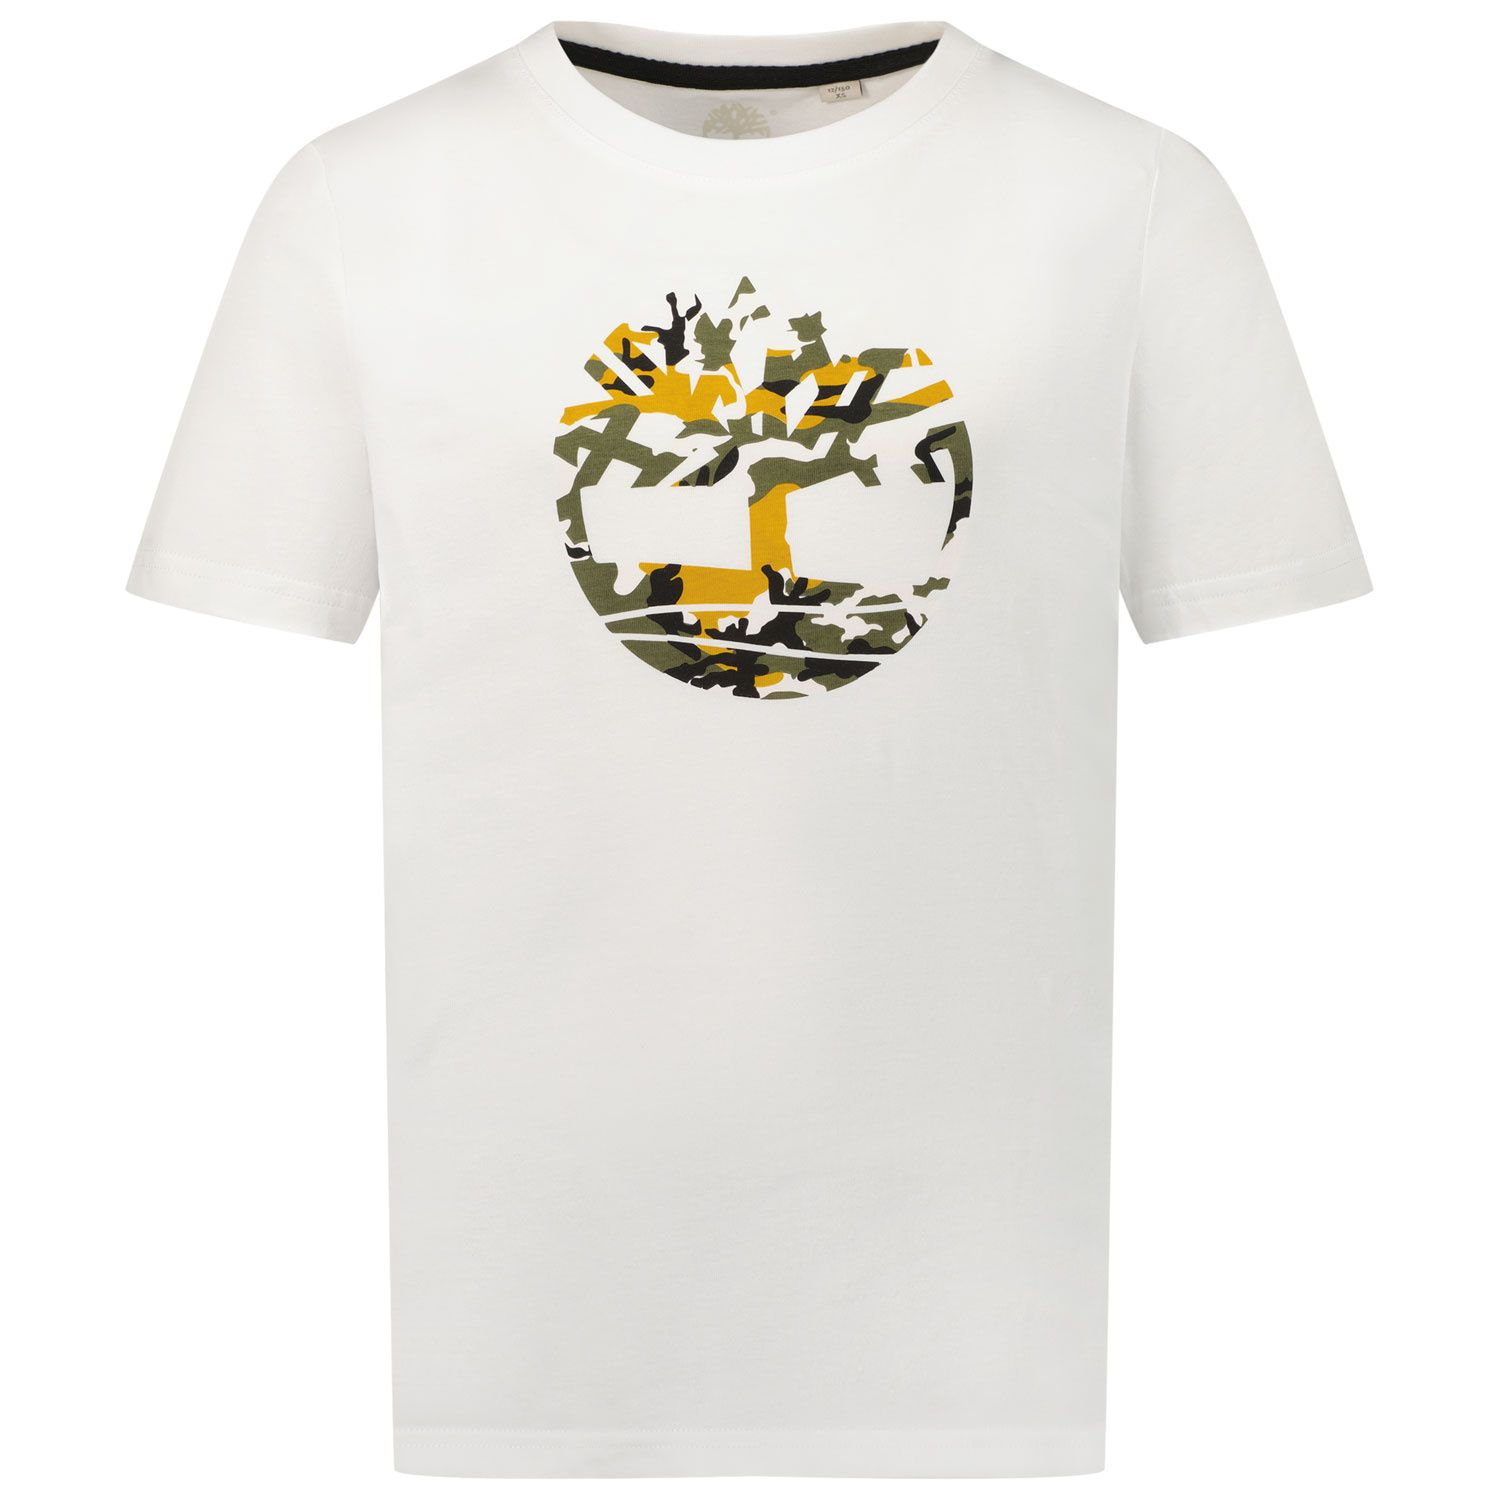 Picture of Timberland T25S34 kids t-shirt white